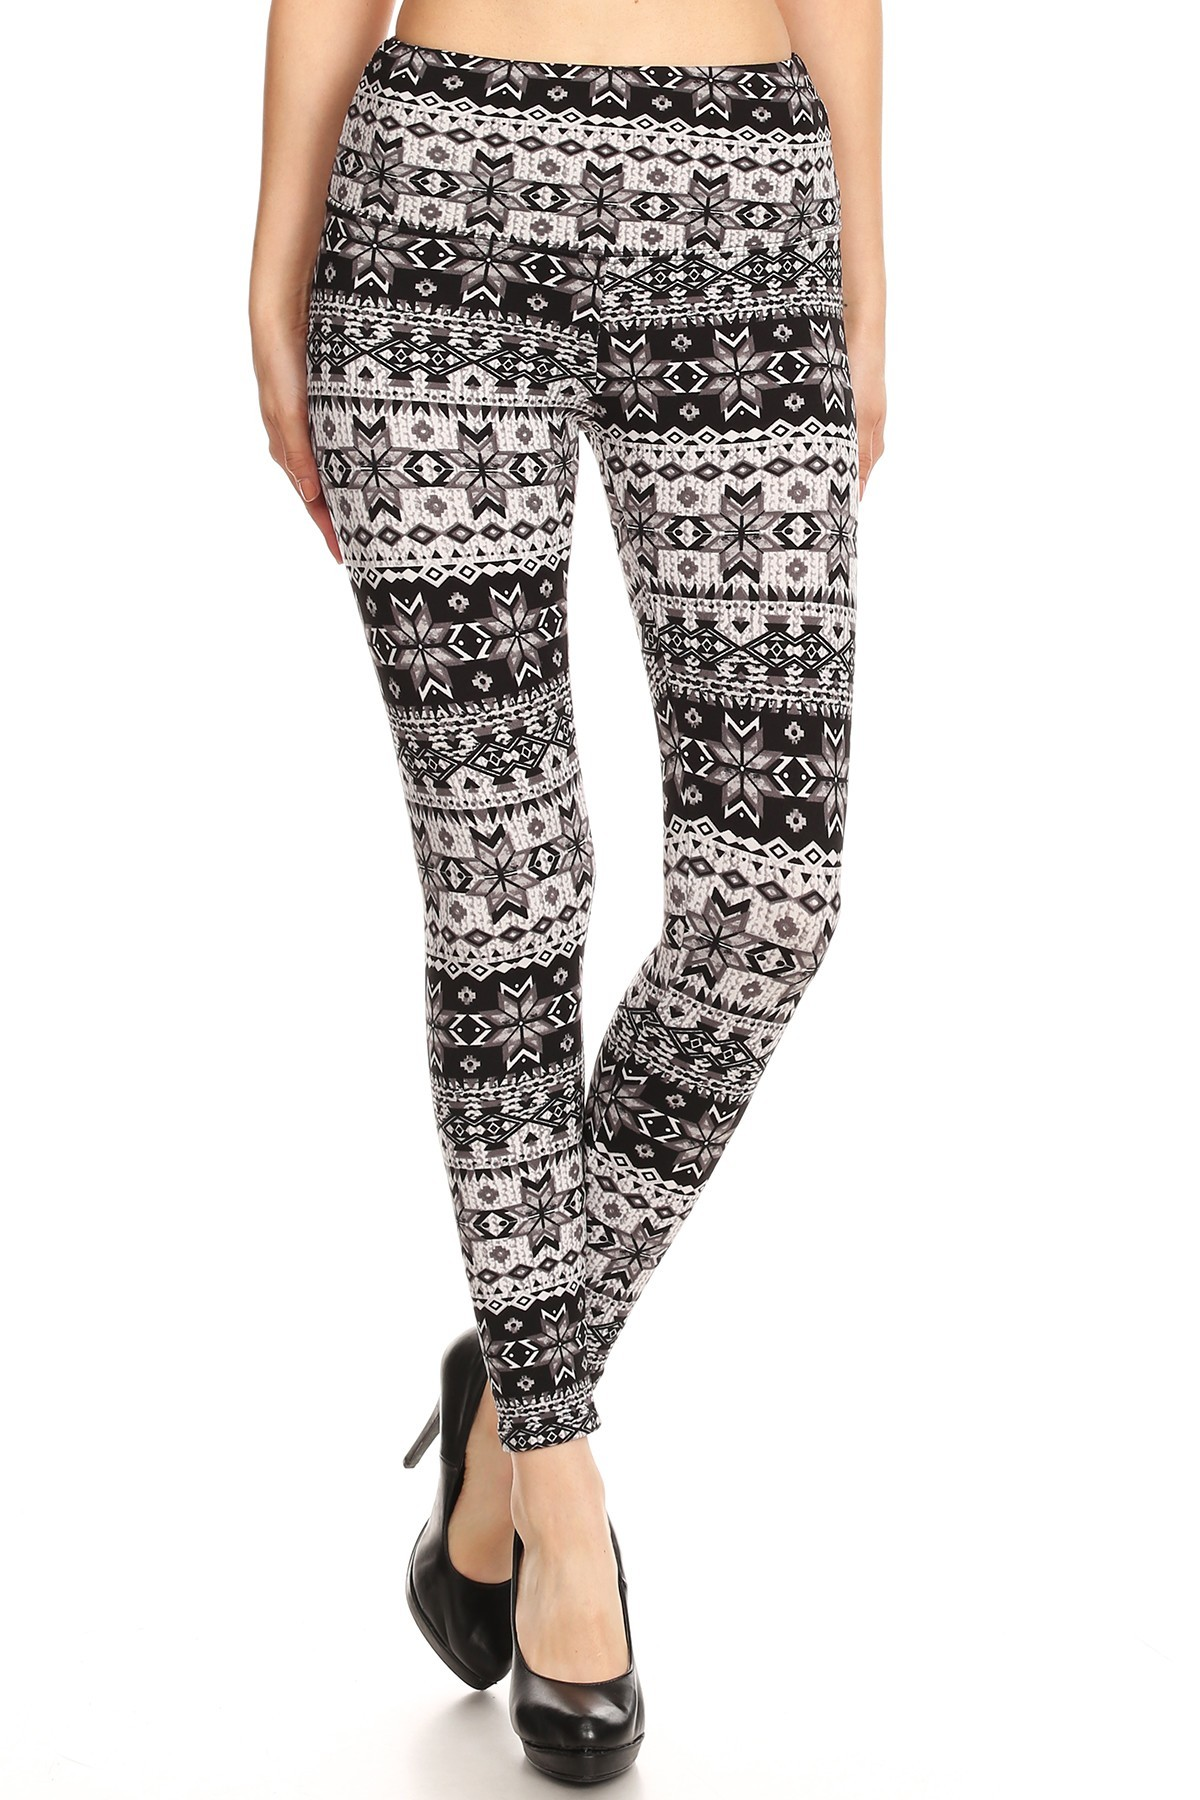 BLACK/GREY FAIRISLE PRINT HIGH WAIST FLEECE LINED ANKLE LEGGING#8L76-31